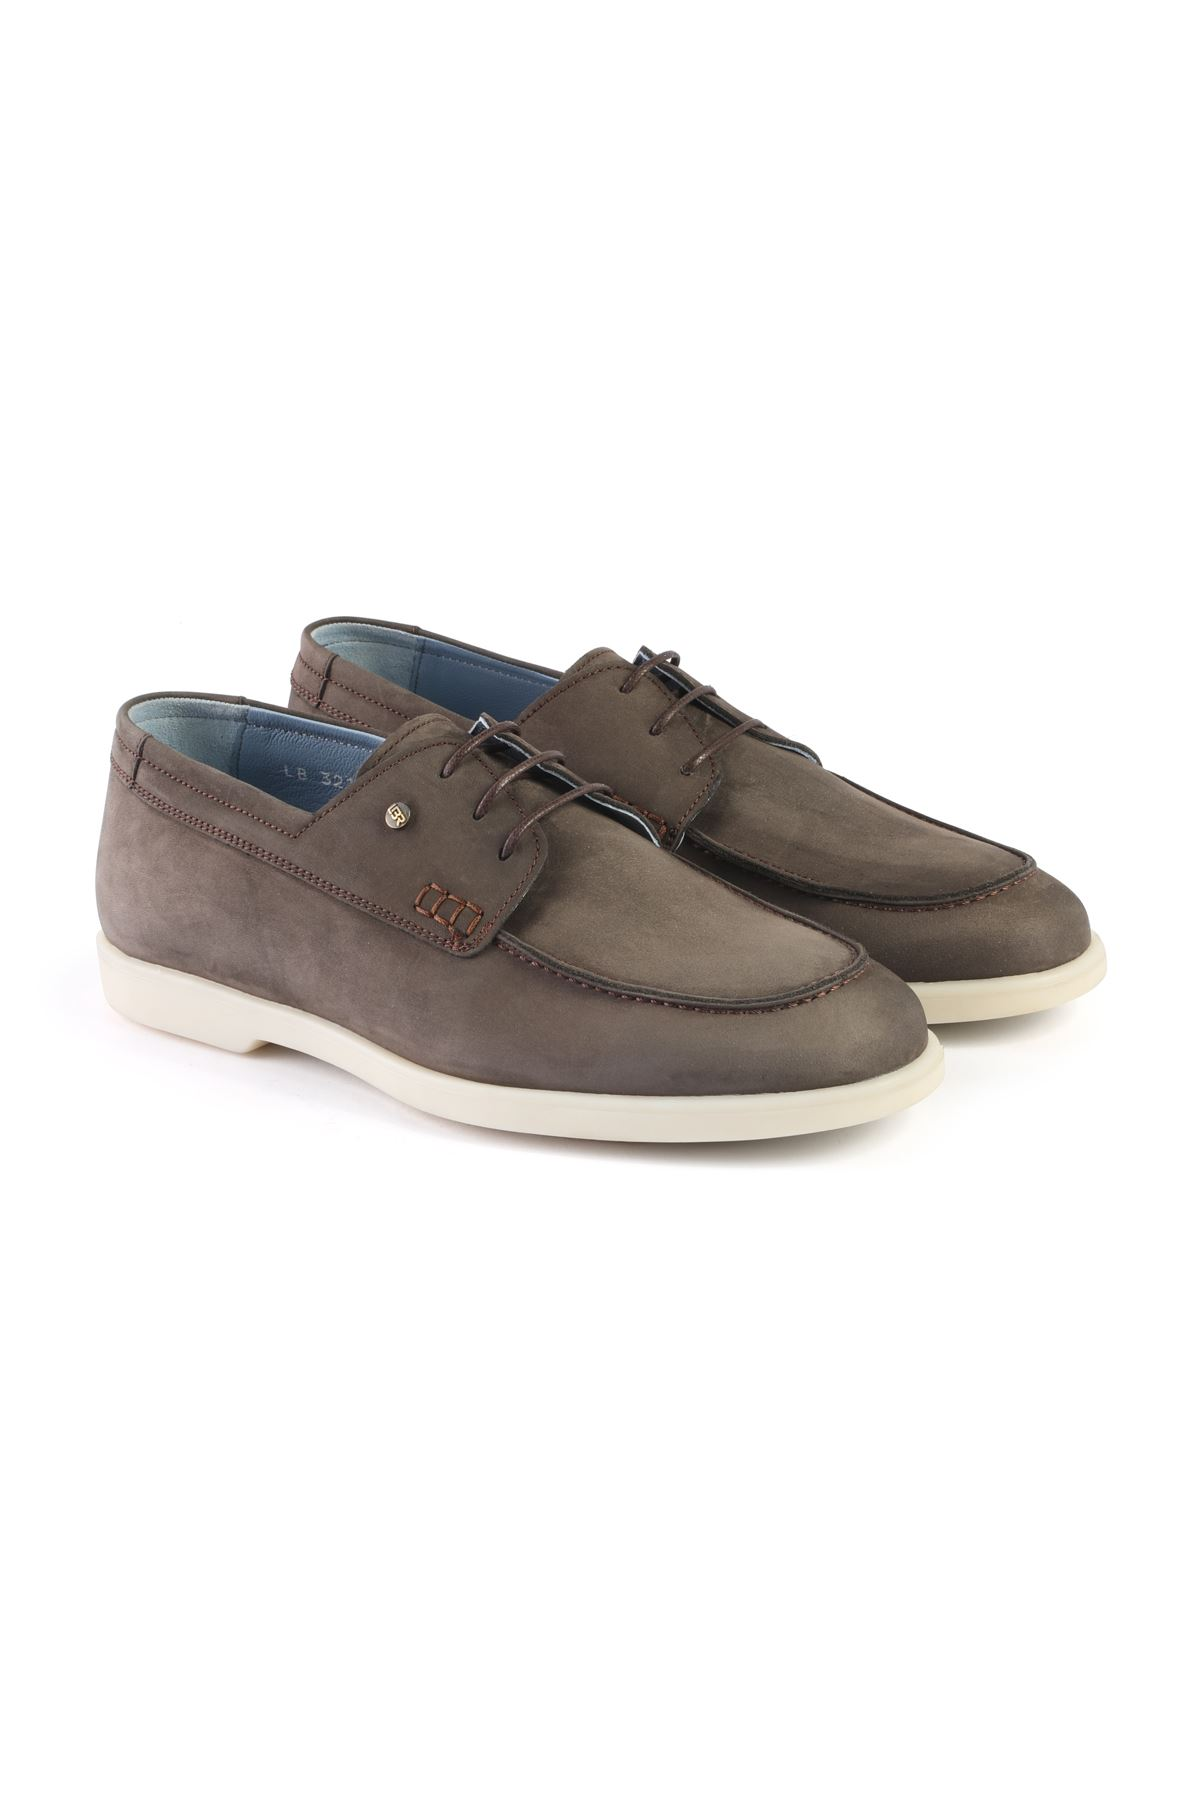 Libero L3215 Brown Loafer Shoes